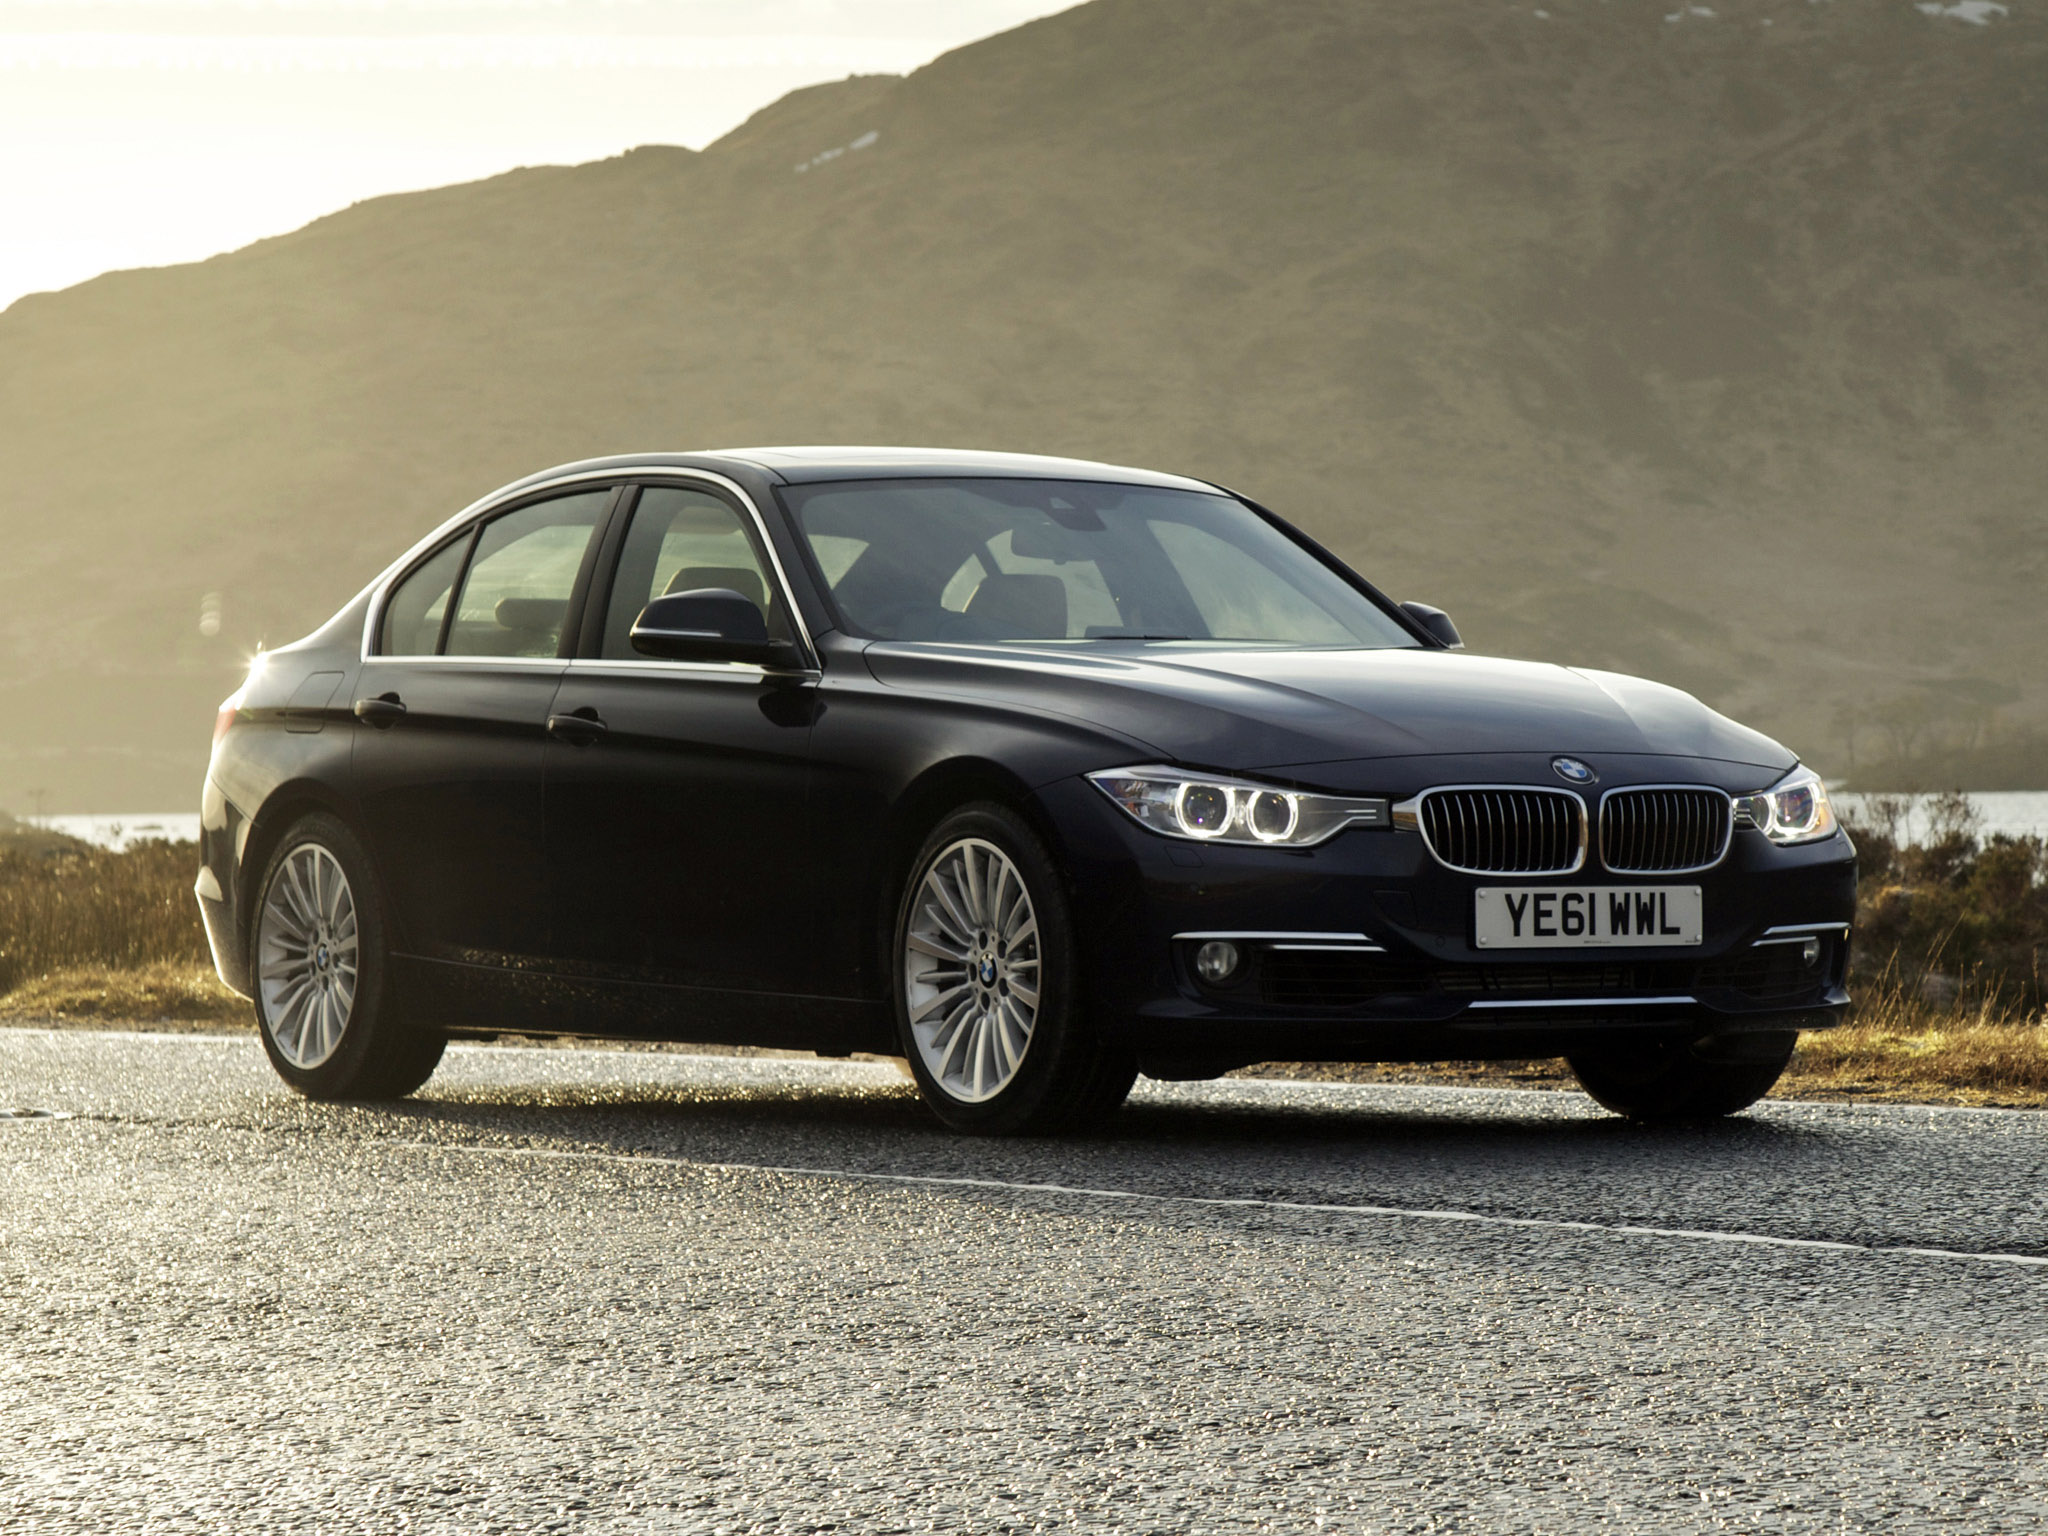 Bmw 335i Sedan Luxury Line F30 Uk 2012 Photo 08 Car In Pictures Car Photo Gallery